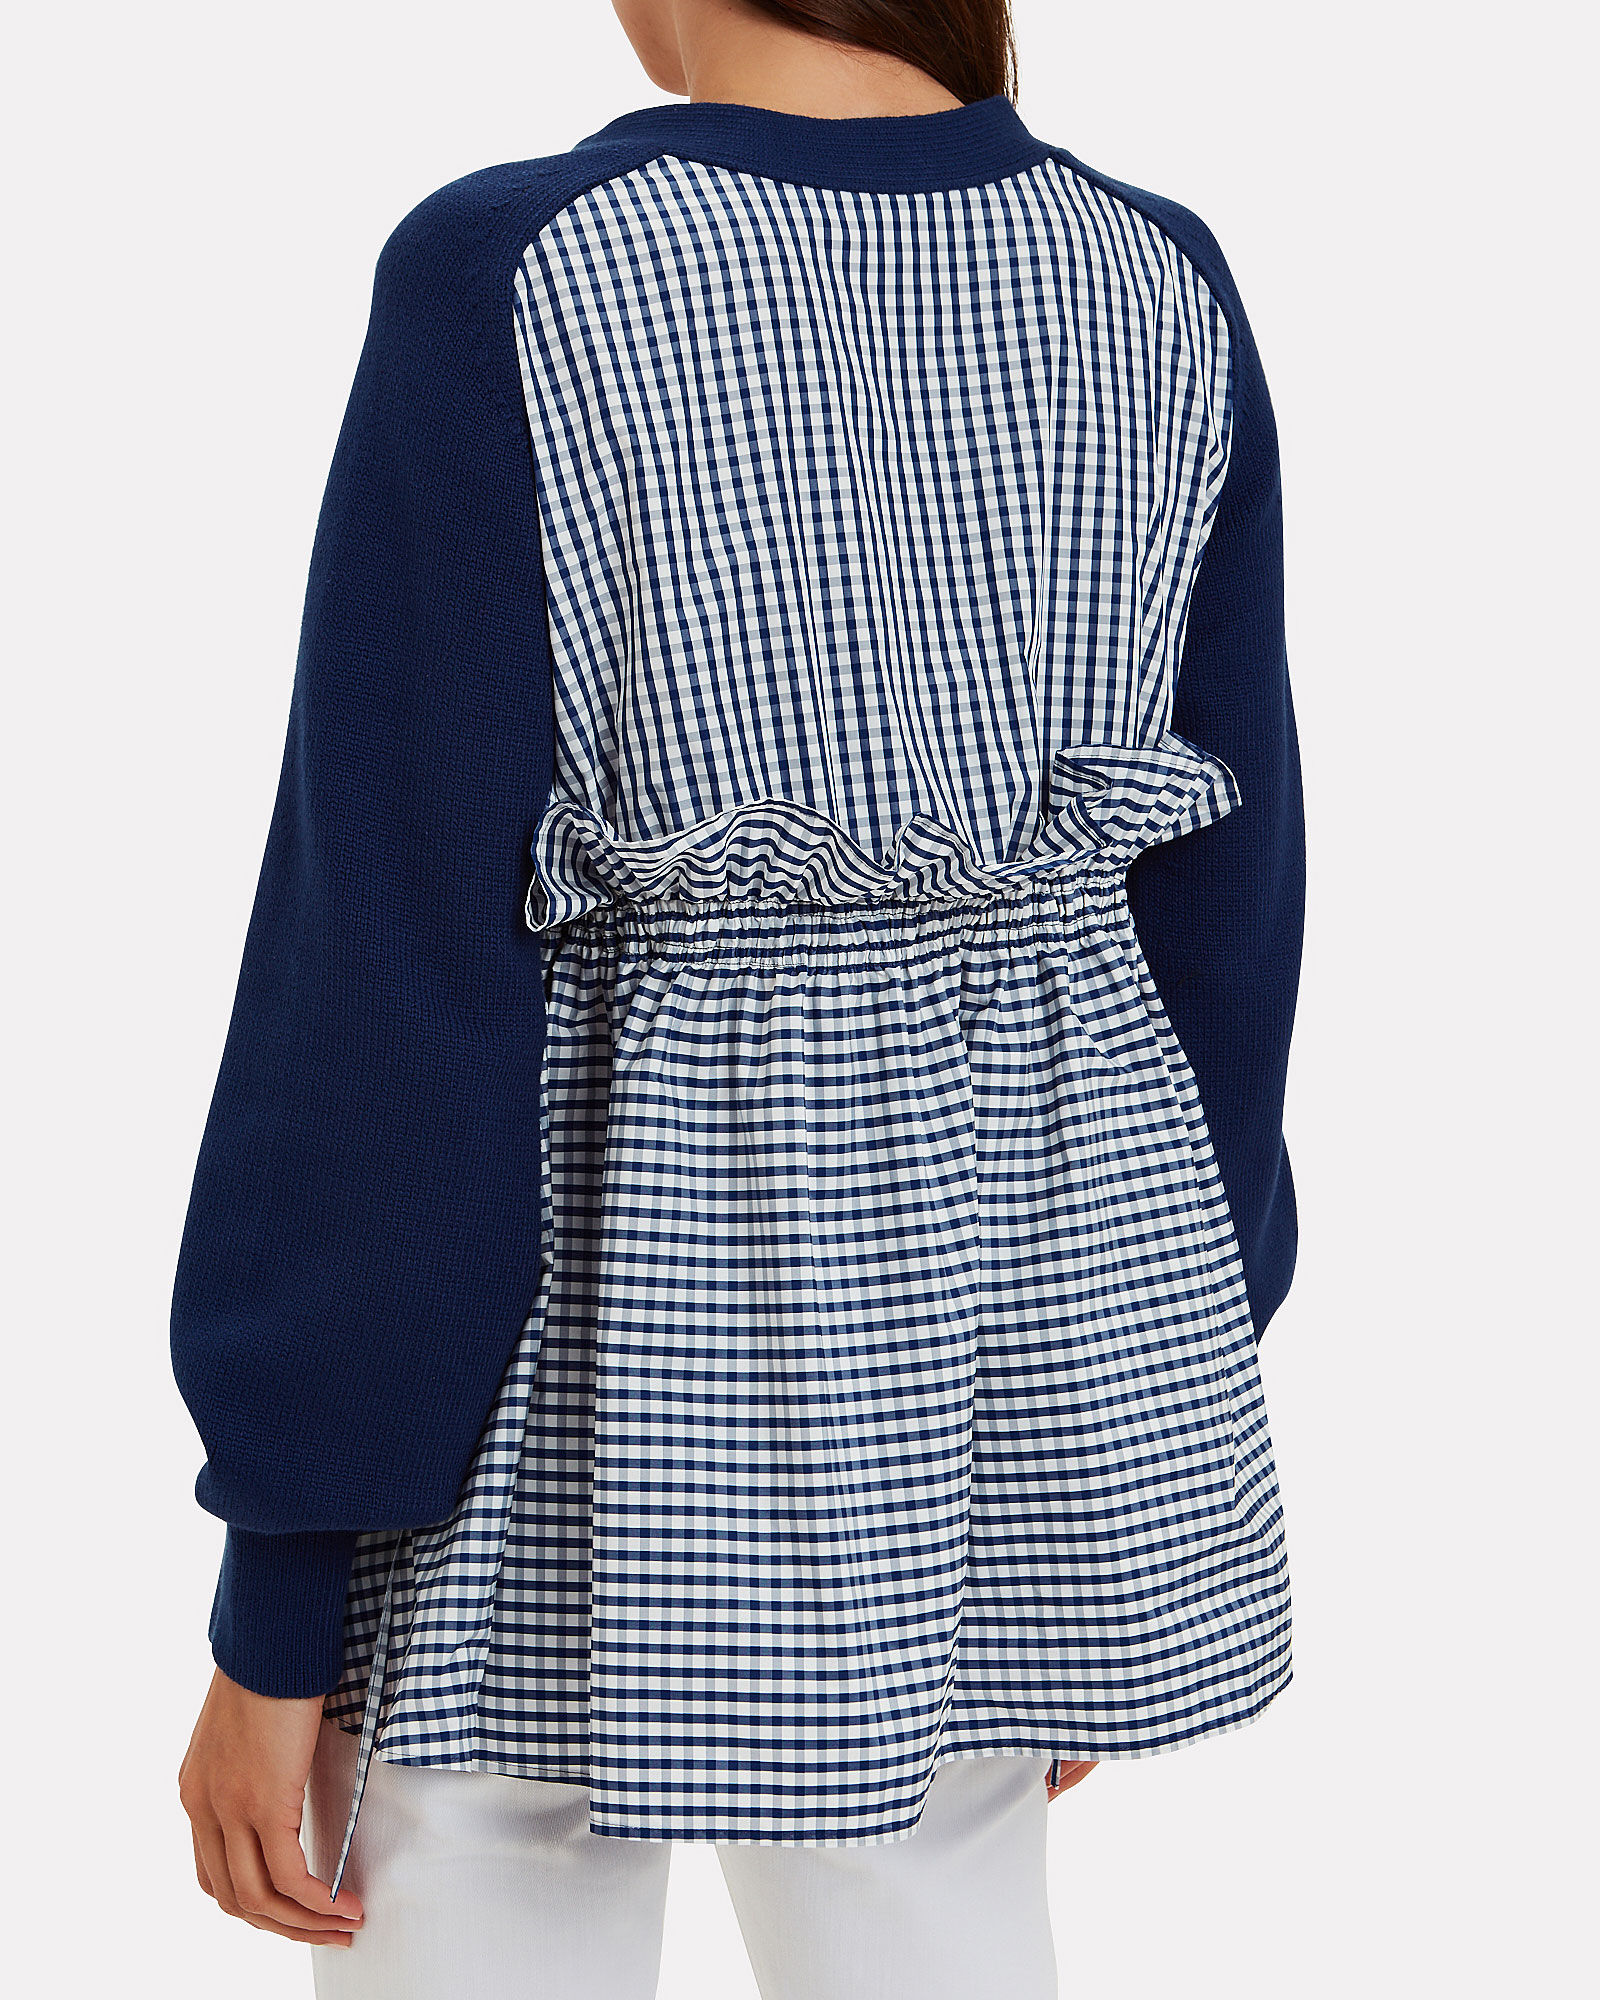 Ruched Parachute Cardigan, NAVY/GINGHAM, hi-res